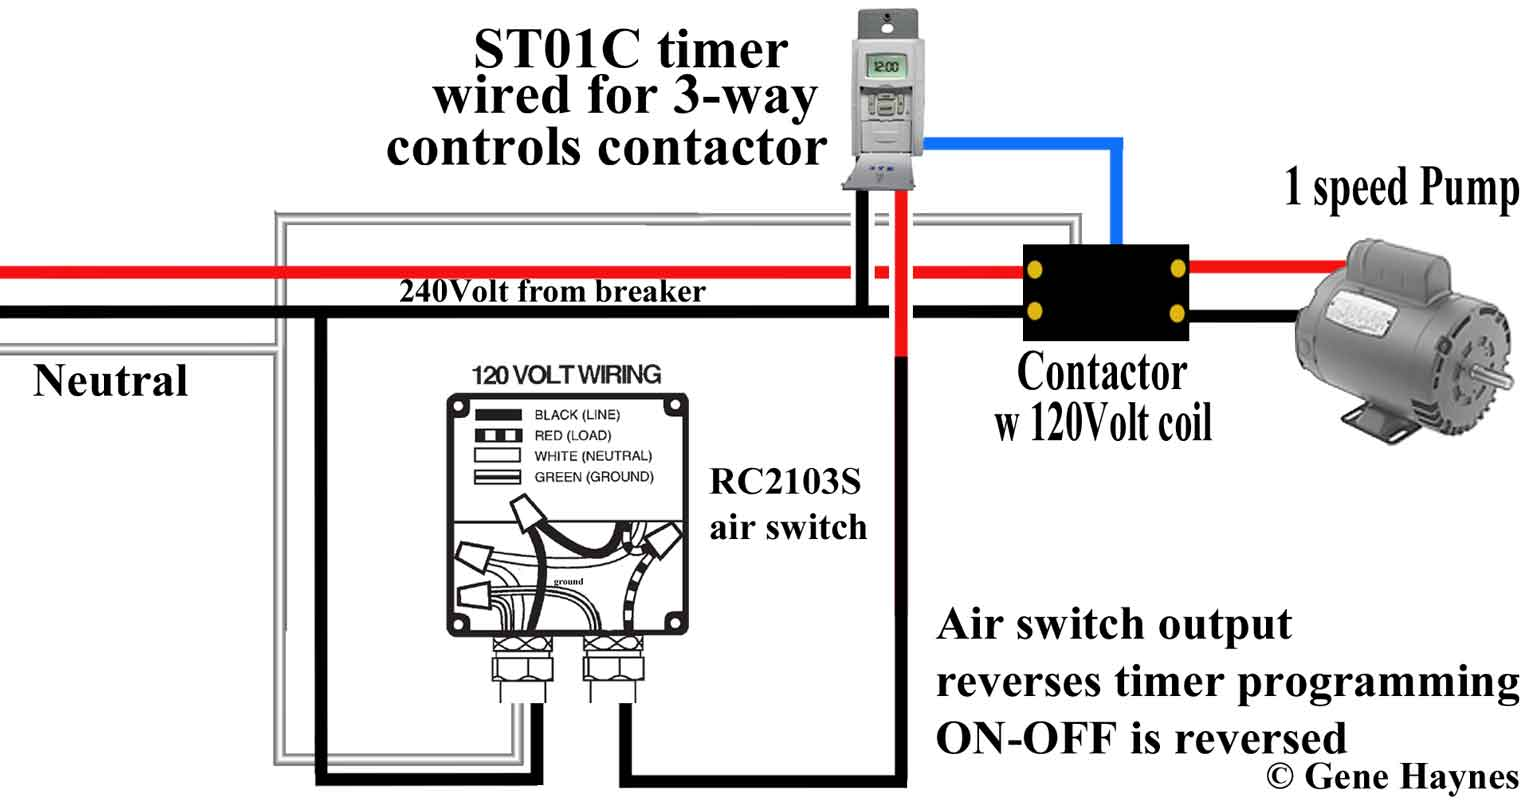 Convert single-pole switch into 3-way switch using ST01/ How to add a switch  · How to add 3-way switch · 24 volt programmable timer